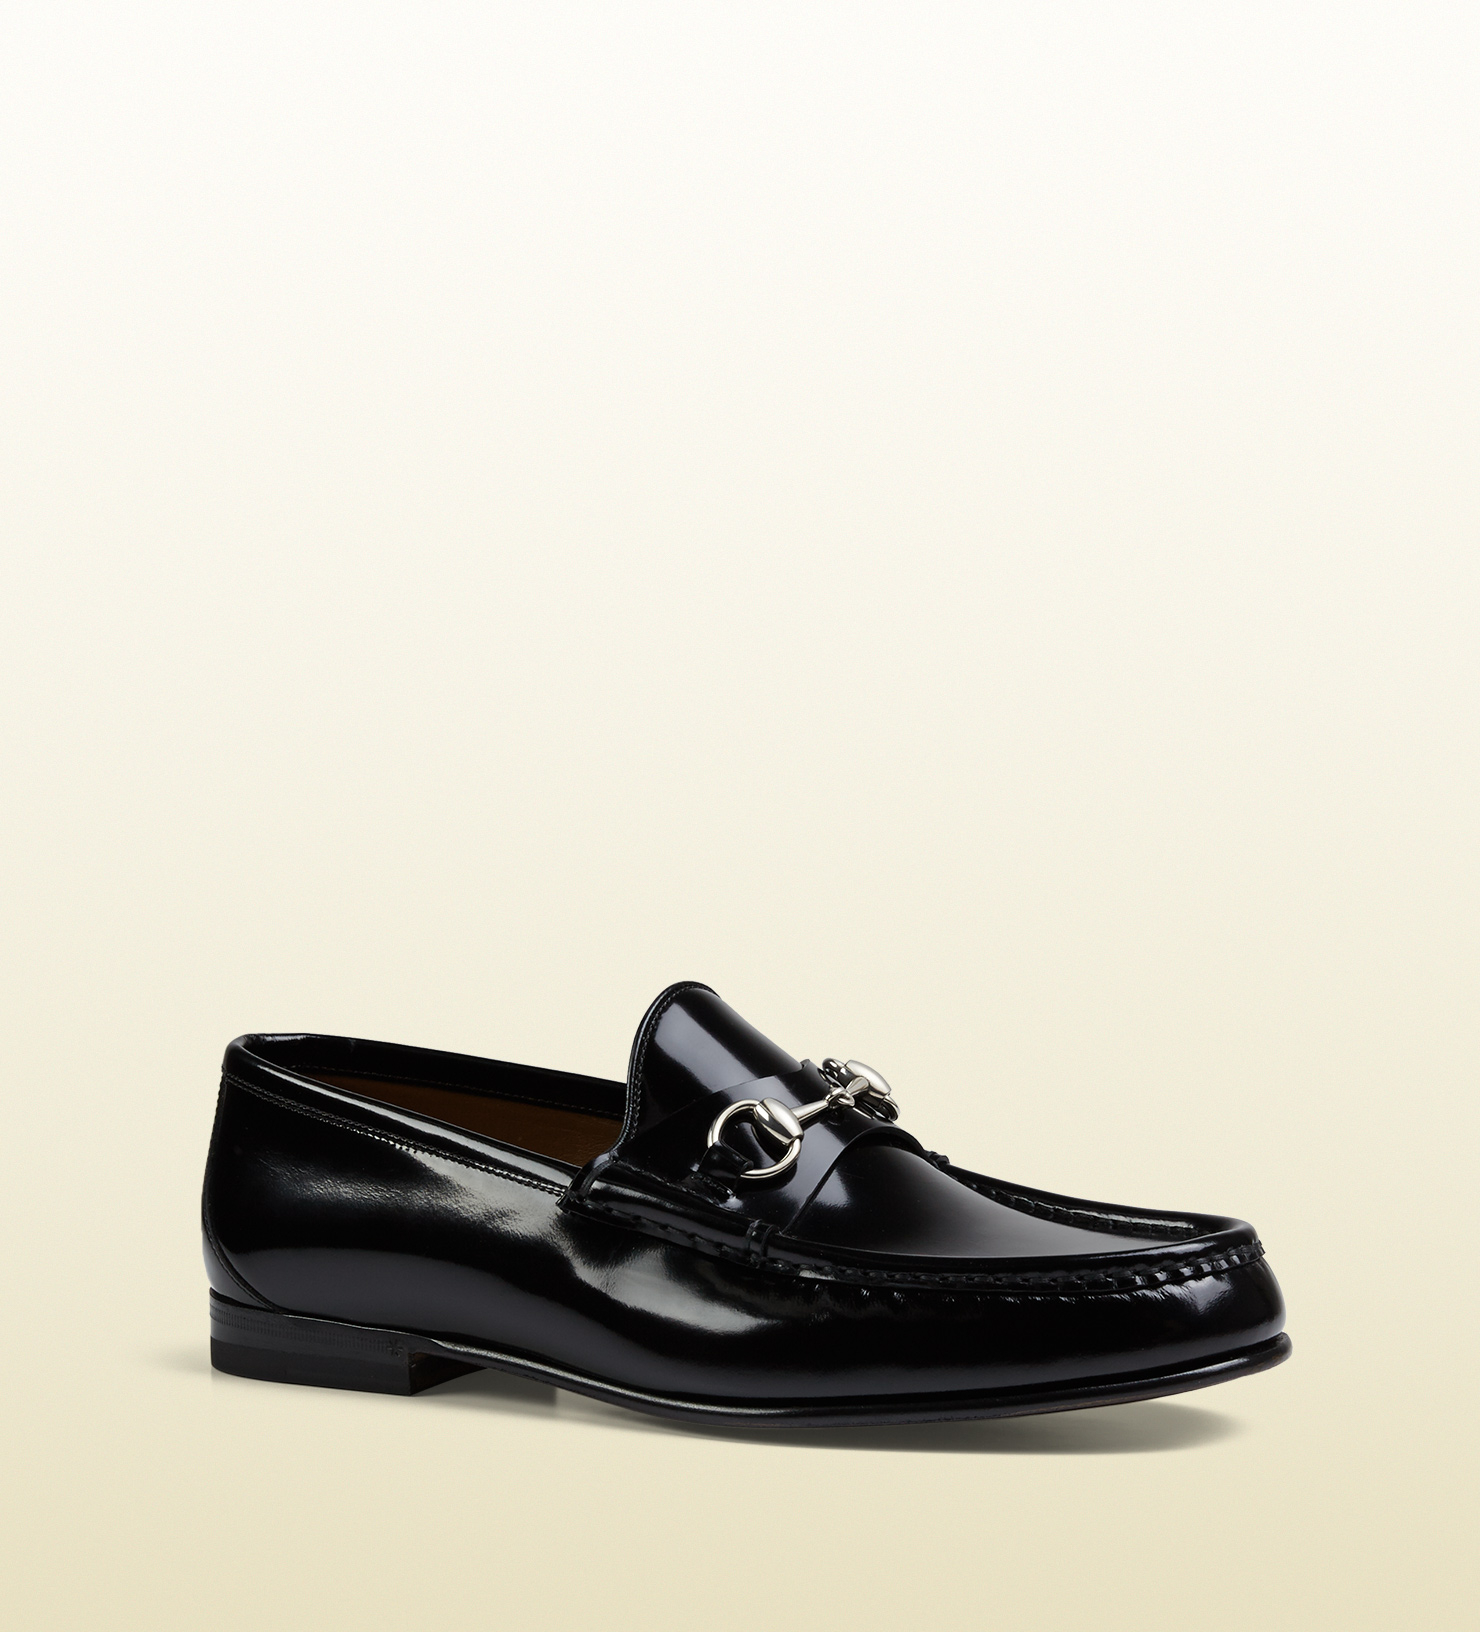 6bf67634caa2 Lyst - Gucci Men s Brushed Leather Horsebit Loafer in Black for Men